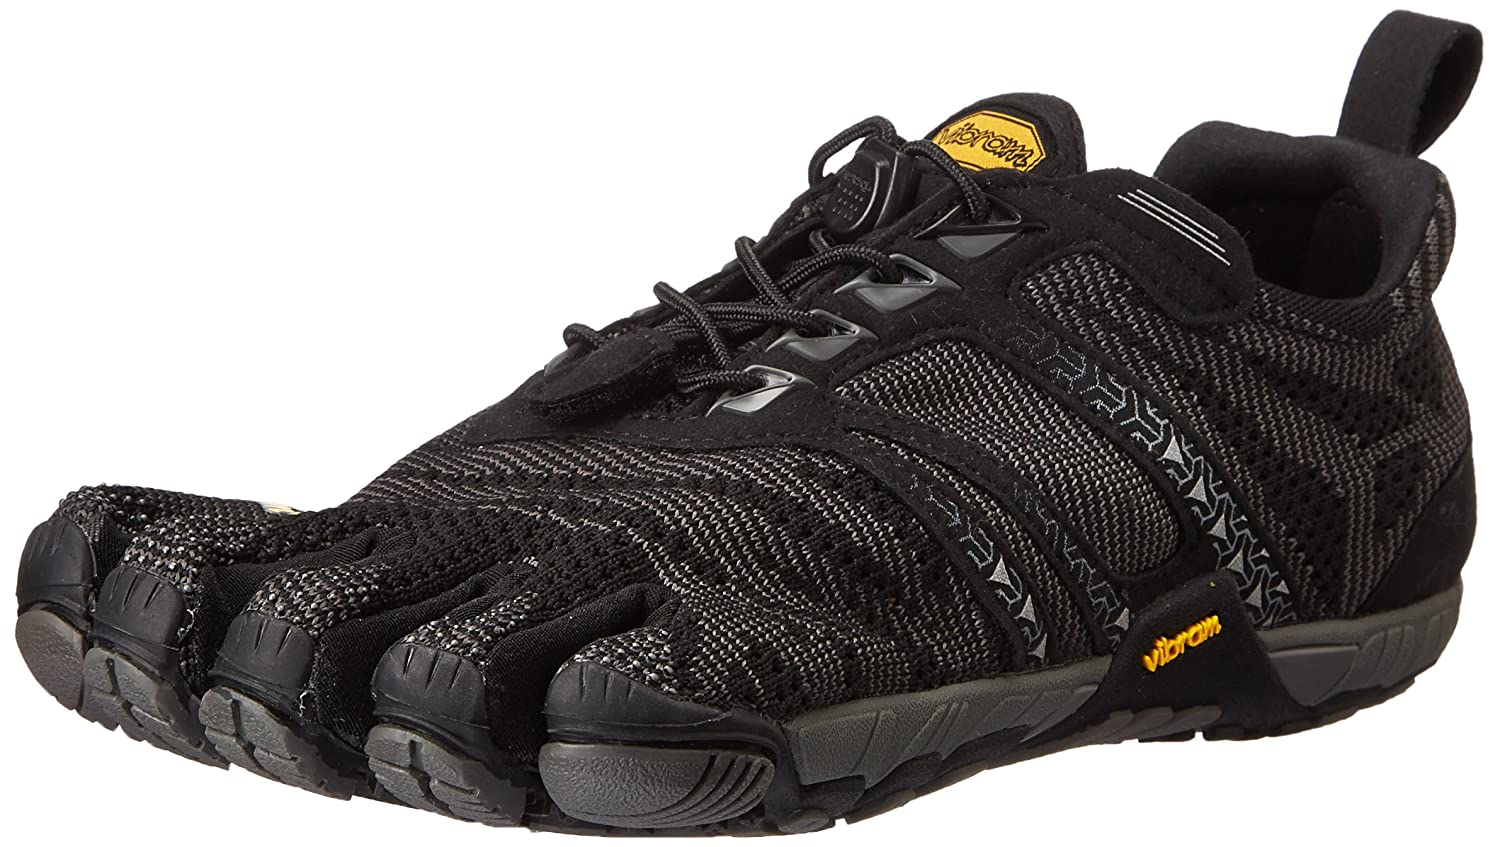 Vibram Women's KMD Evo Cross Training Shoe B00KR4R0CU 39 M EU / 8 B(M) US|Black/Grey